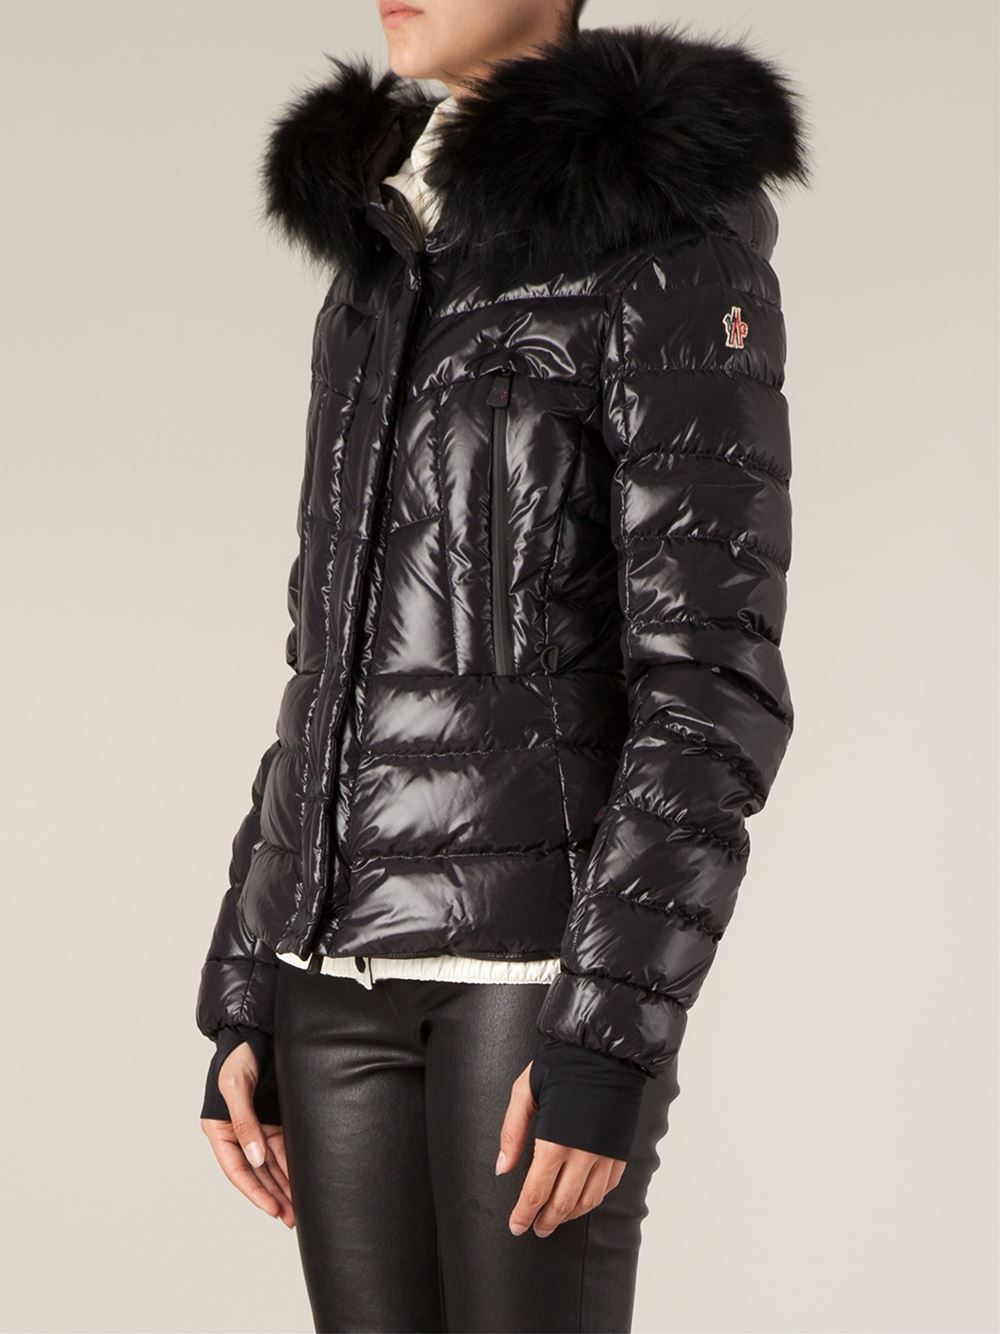 Moncler Jacket With Fur